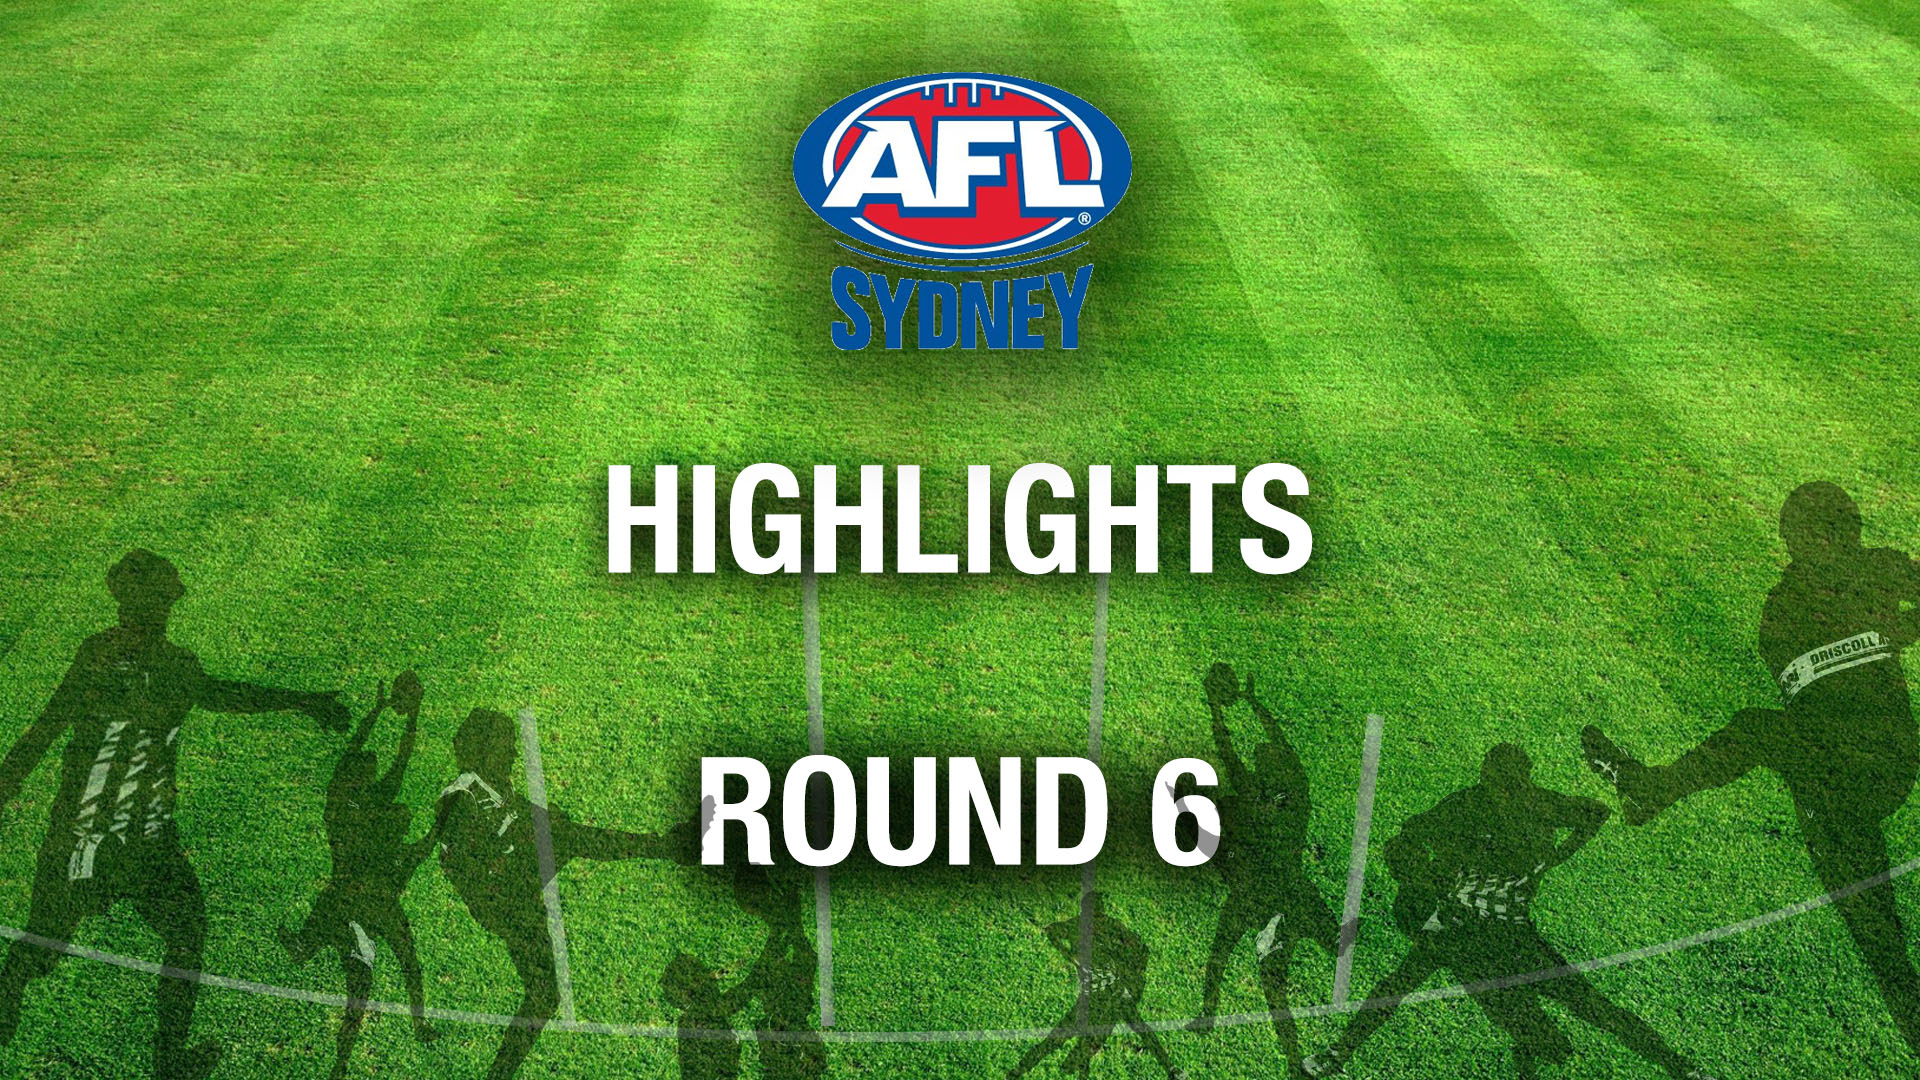 AFL SYDNEY 2018 RD6 HIGHLIGHTS